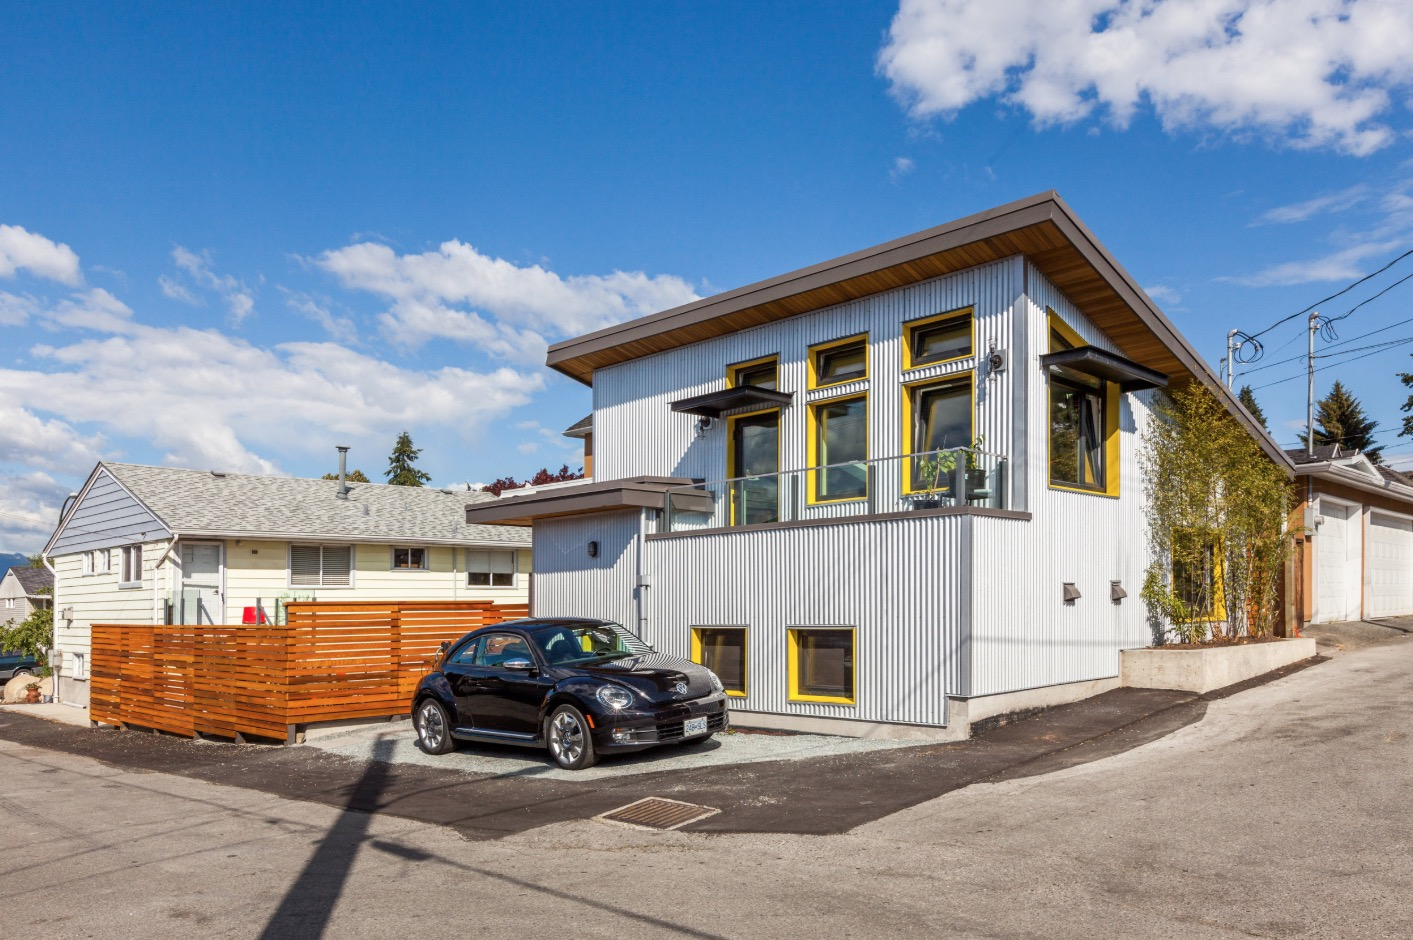 Tiny Home Designs: Custom 760 Sq. Ft. Small House Built For A Graphic Artist